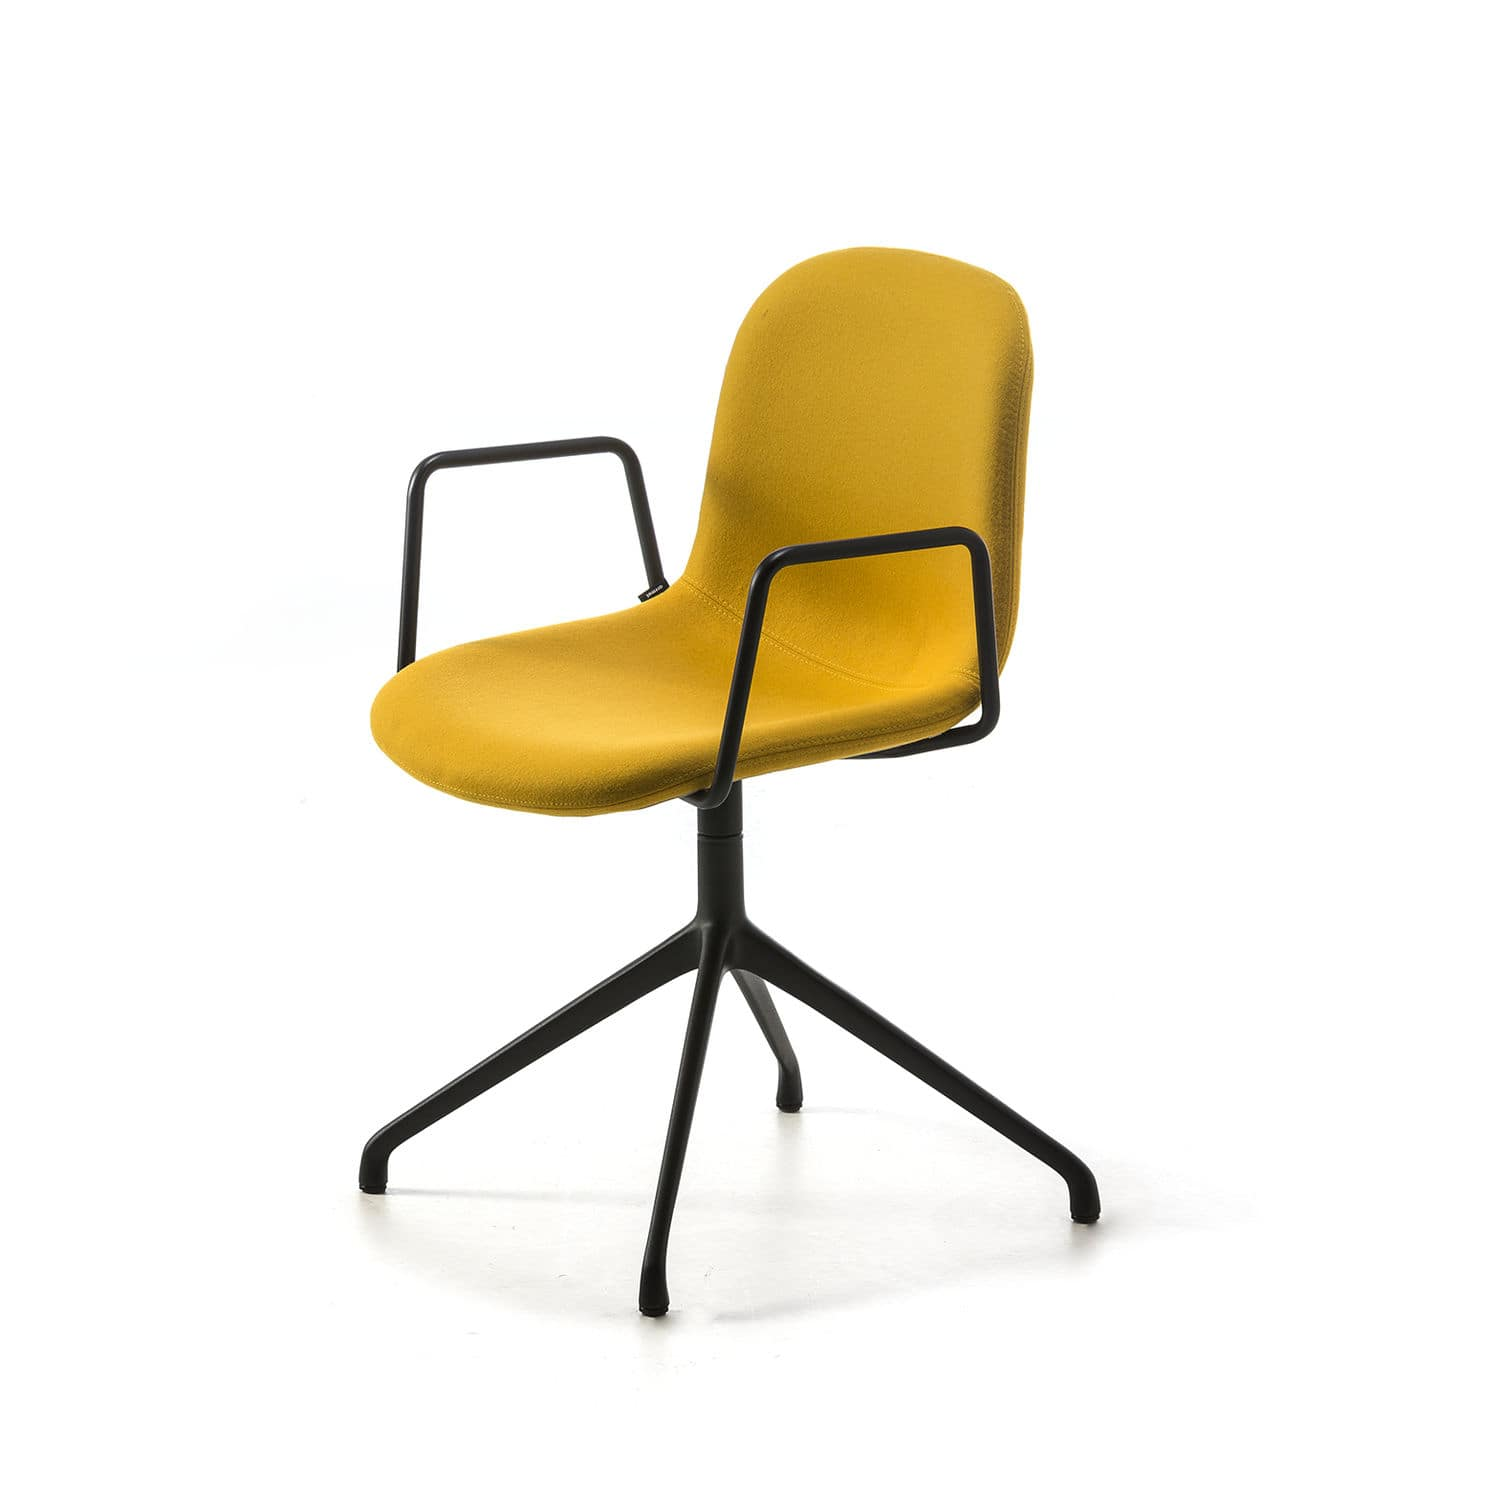 contemporary office chairs revolving chair flipkart with armrests swivel fabric mani ar sp by welling ludvik